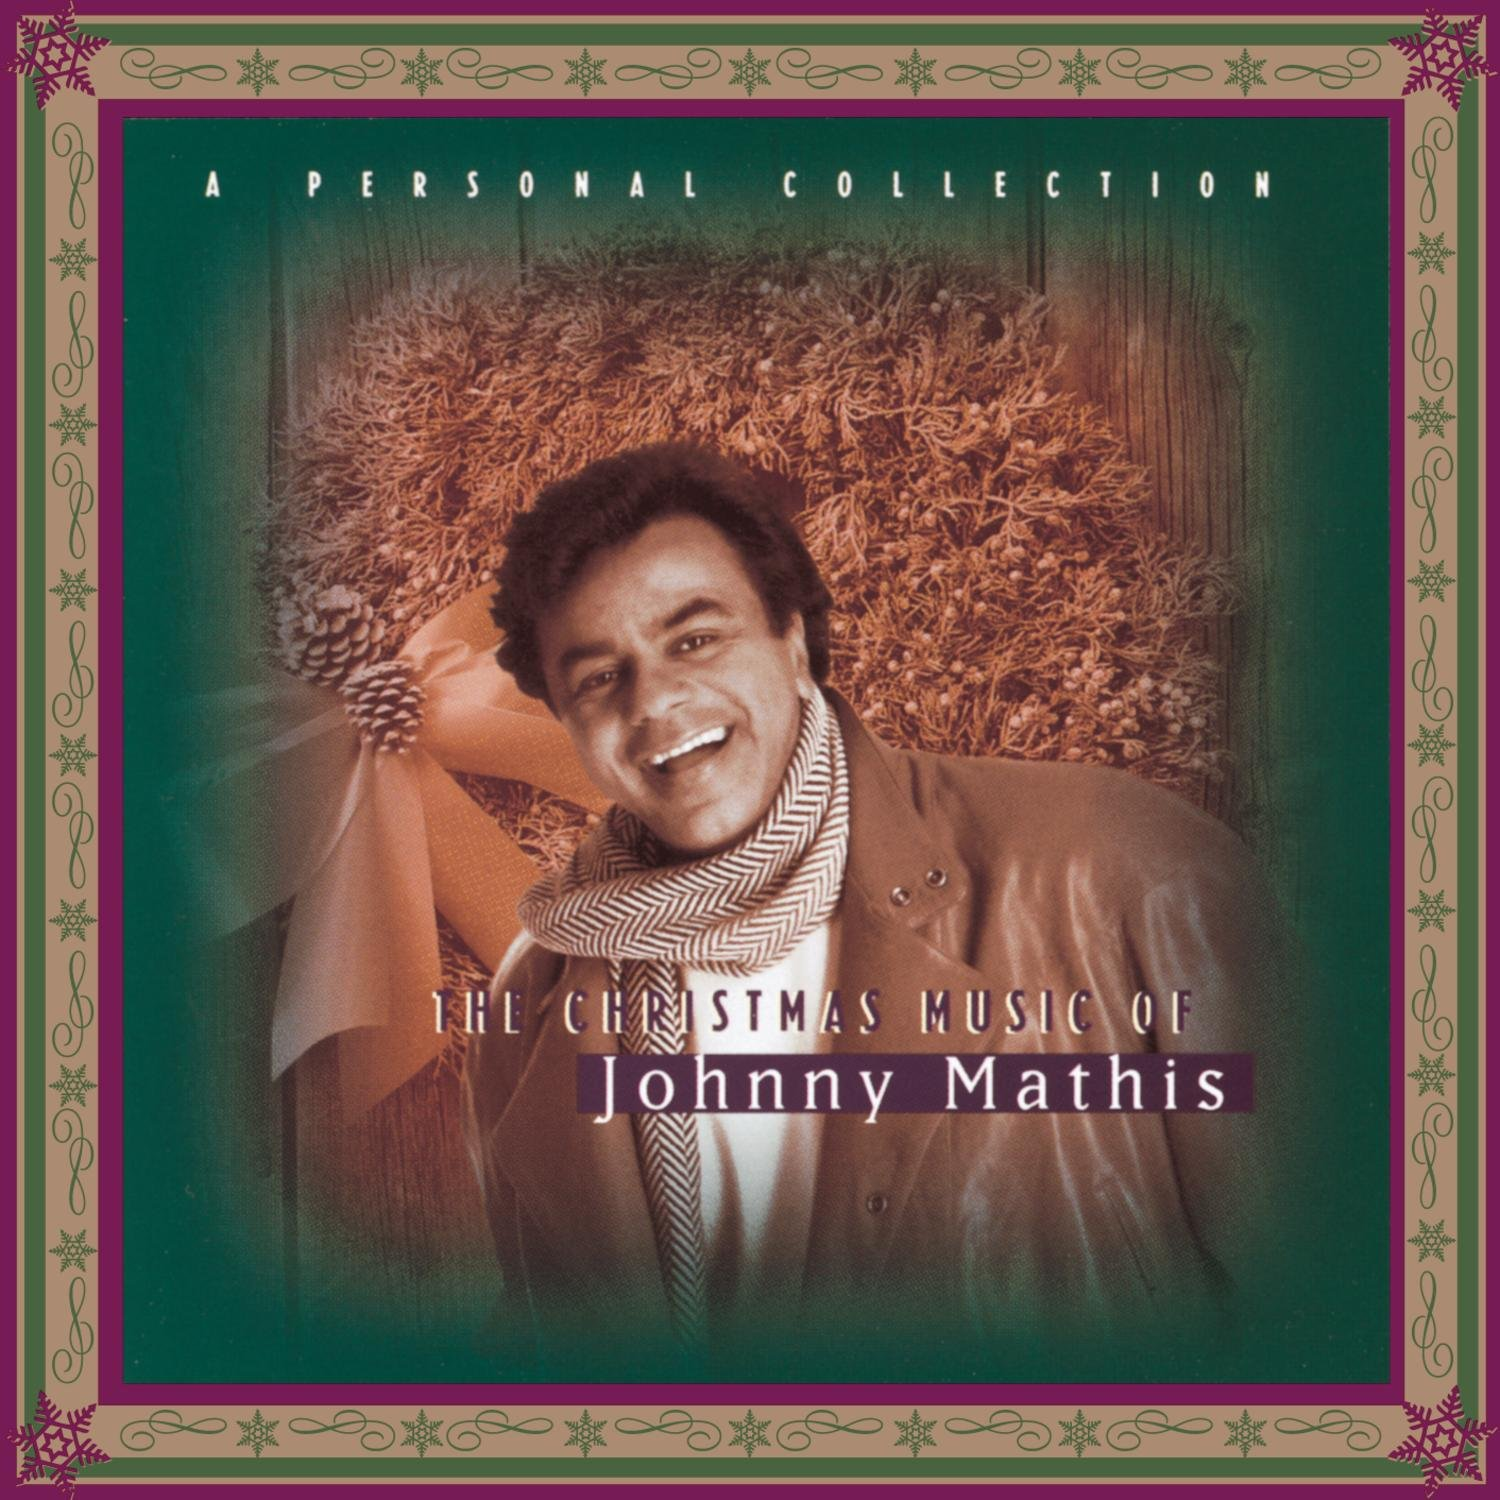 Johnny Mathis - The Christmas Music of Johnny Mathis: A Personal ...